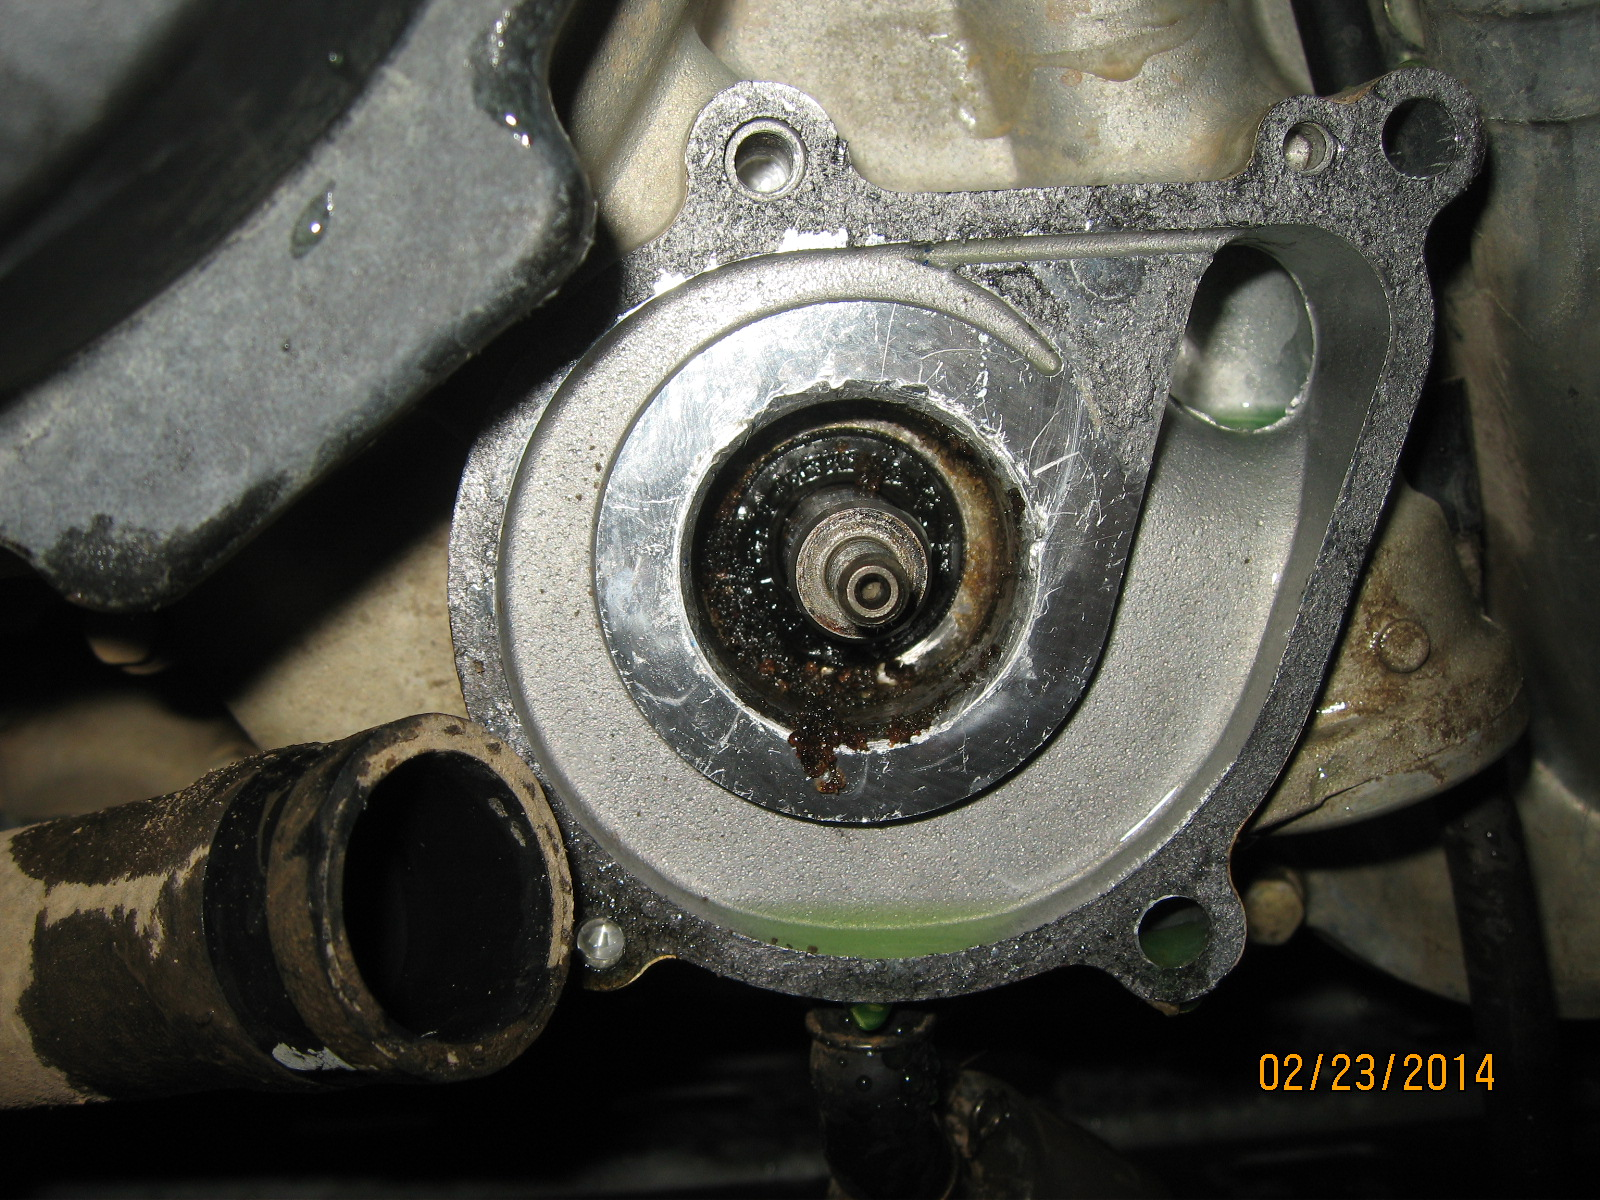 2003 range rover engine diagram 1st time water pump seal repair mudinmyblood forums  1st time water pump seal repair mudinmyblood forums